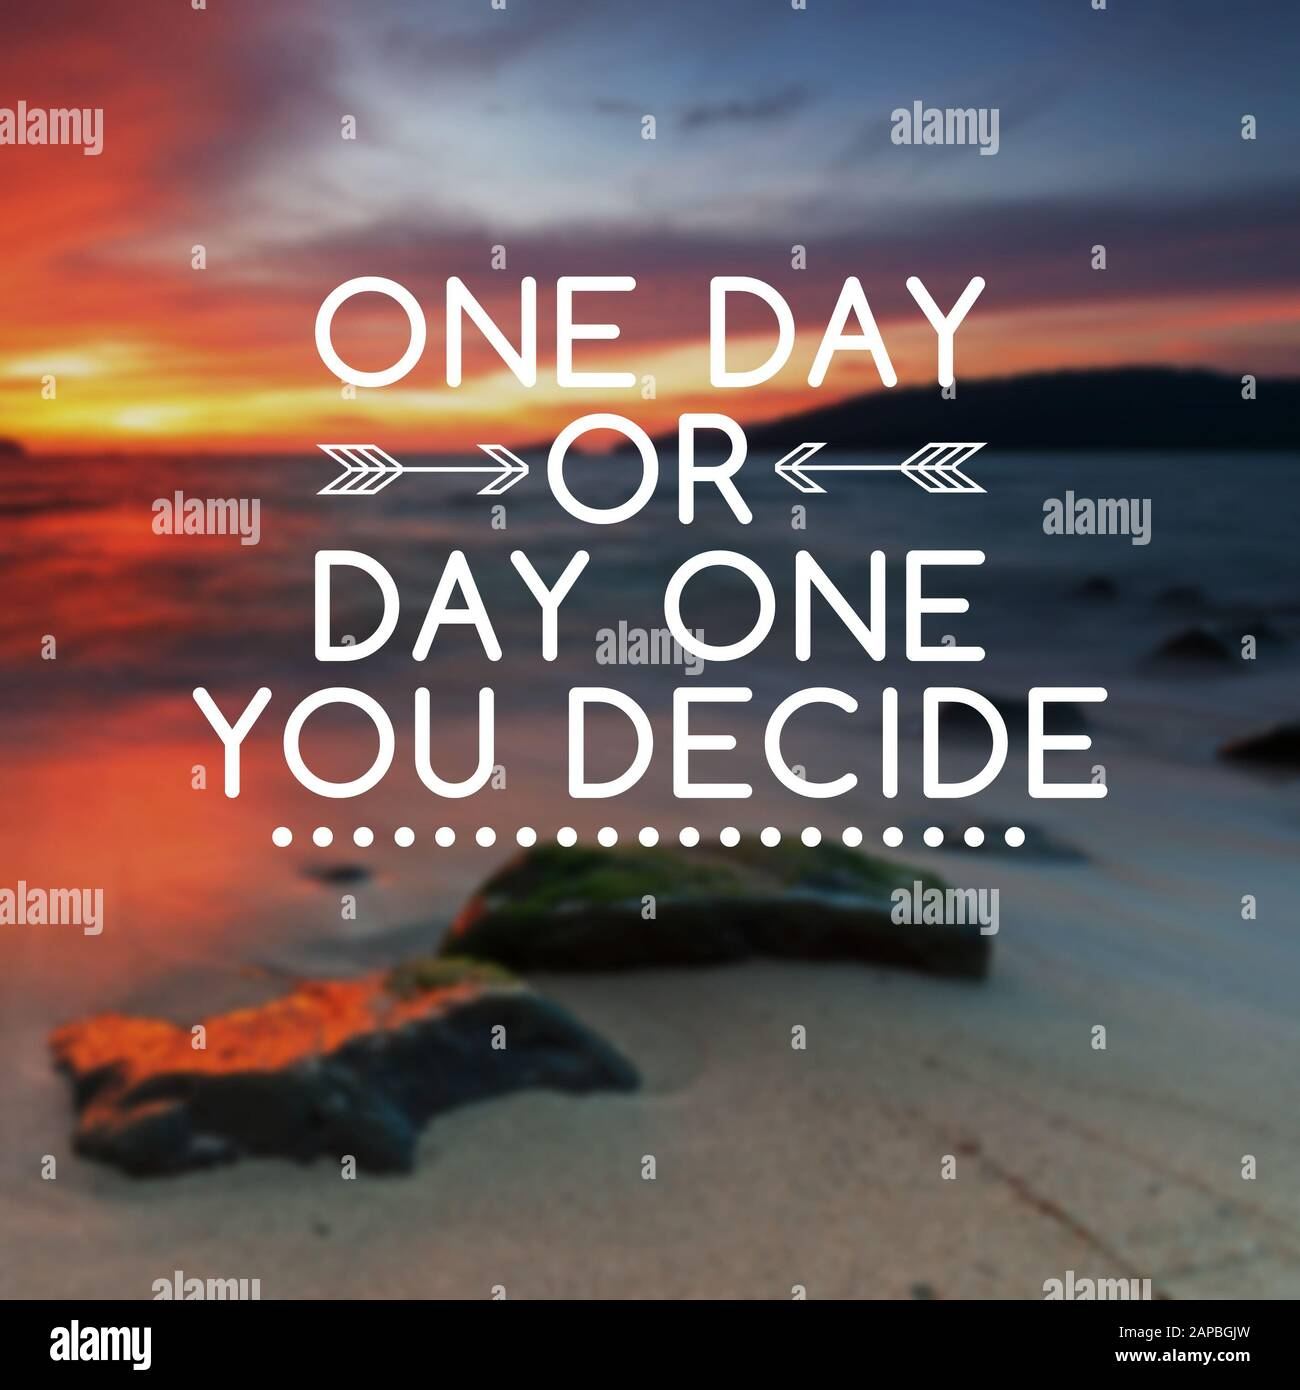 Motivational And Life Inspirational Quotes One Day Or Day One You Decide Stock Photo Alamy